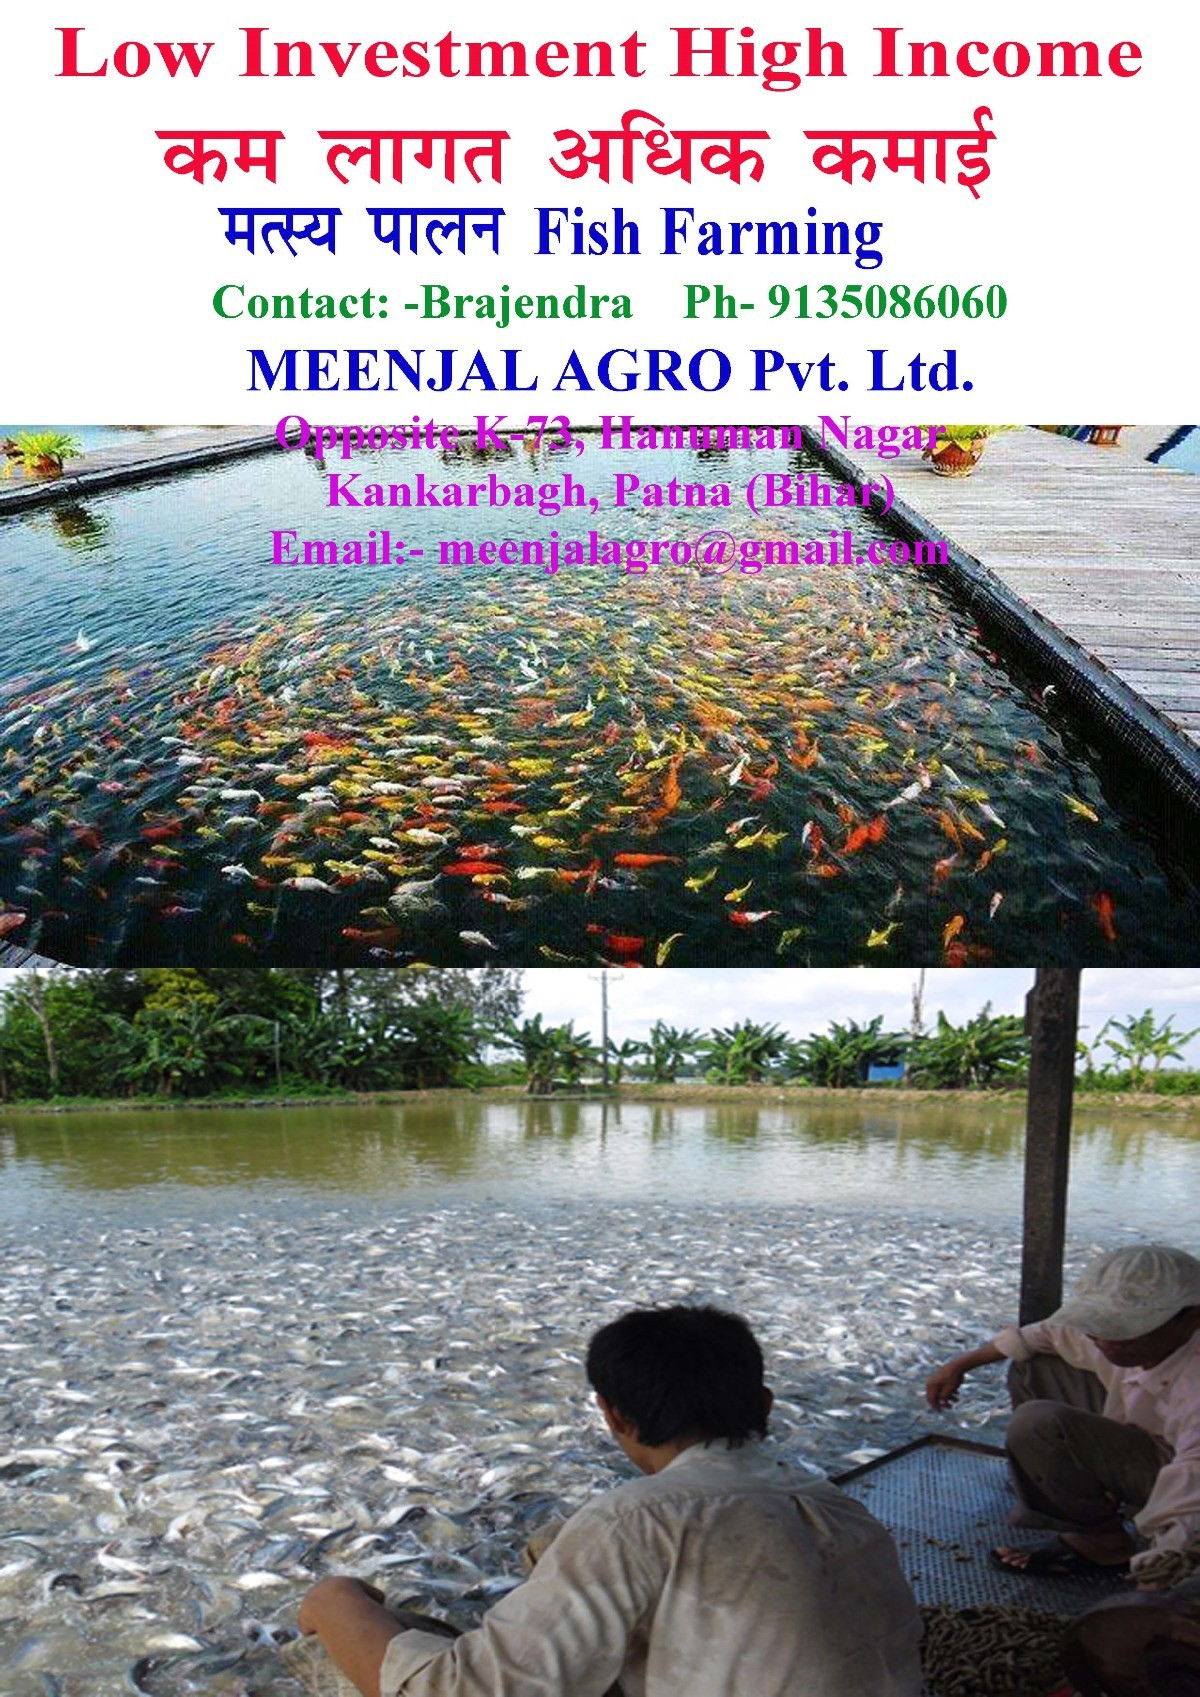 Fish aquarium in varanasi - We Provide Free Consultancy For Aquarium Fish Farming And Pond Fish Farming